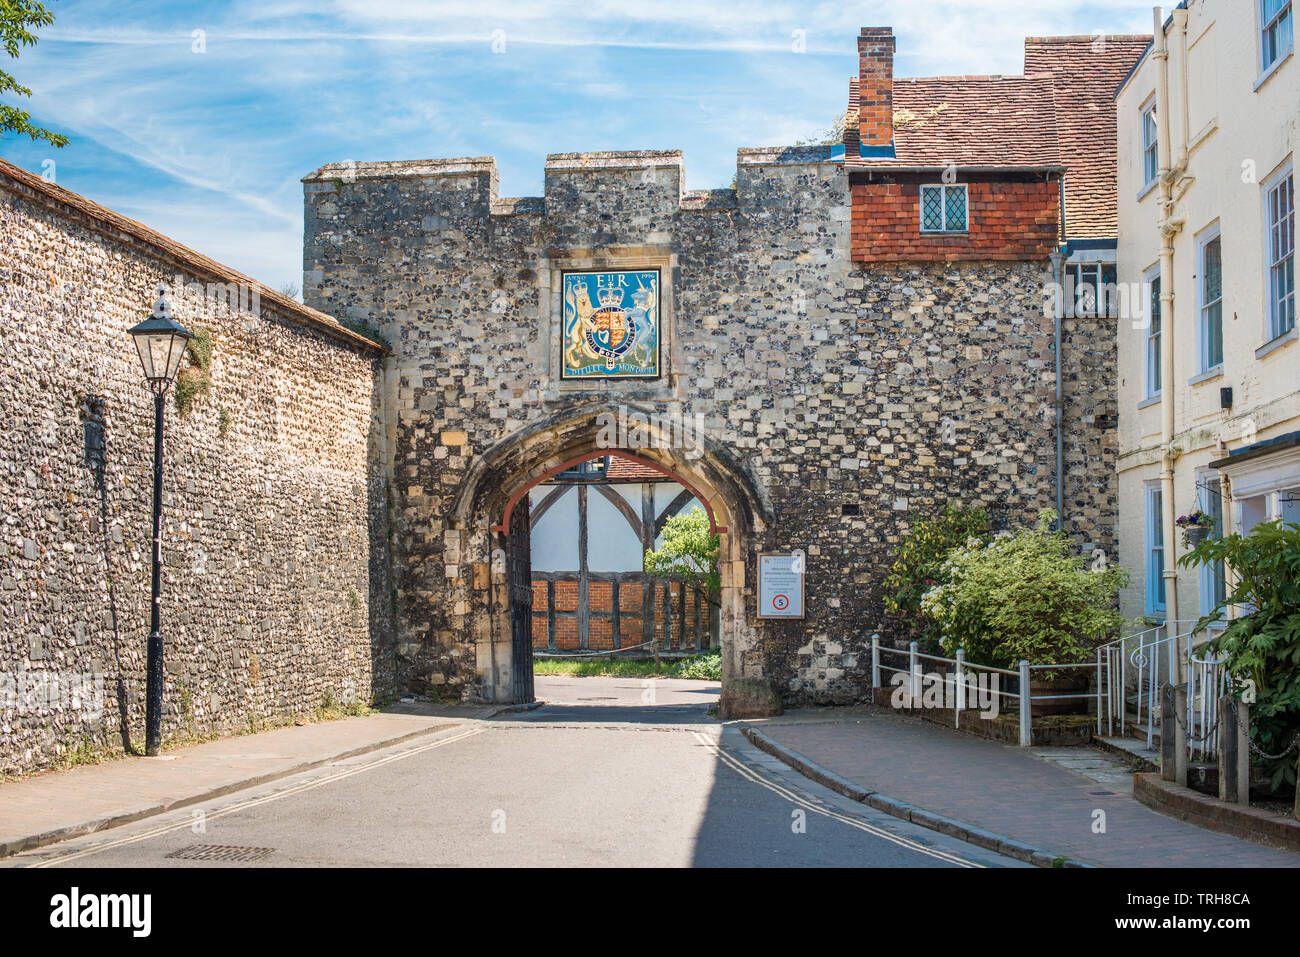 The Priory Gate is a late 15th-century gate once gave access to courtyard of Medieval Priory. Winchester. Hampshire. England. UK. - Stock Image